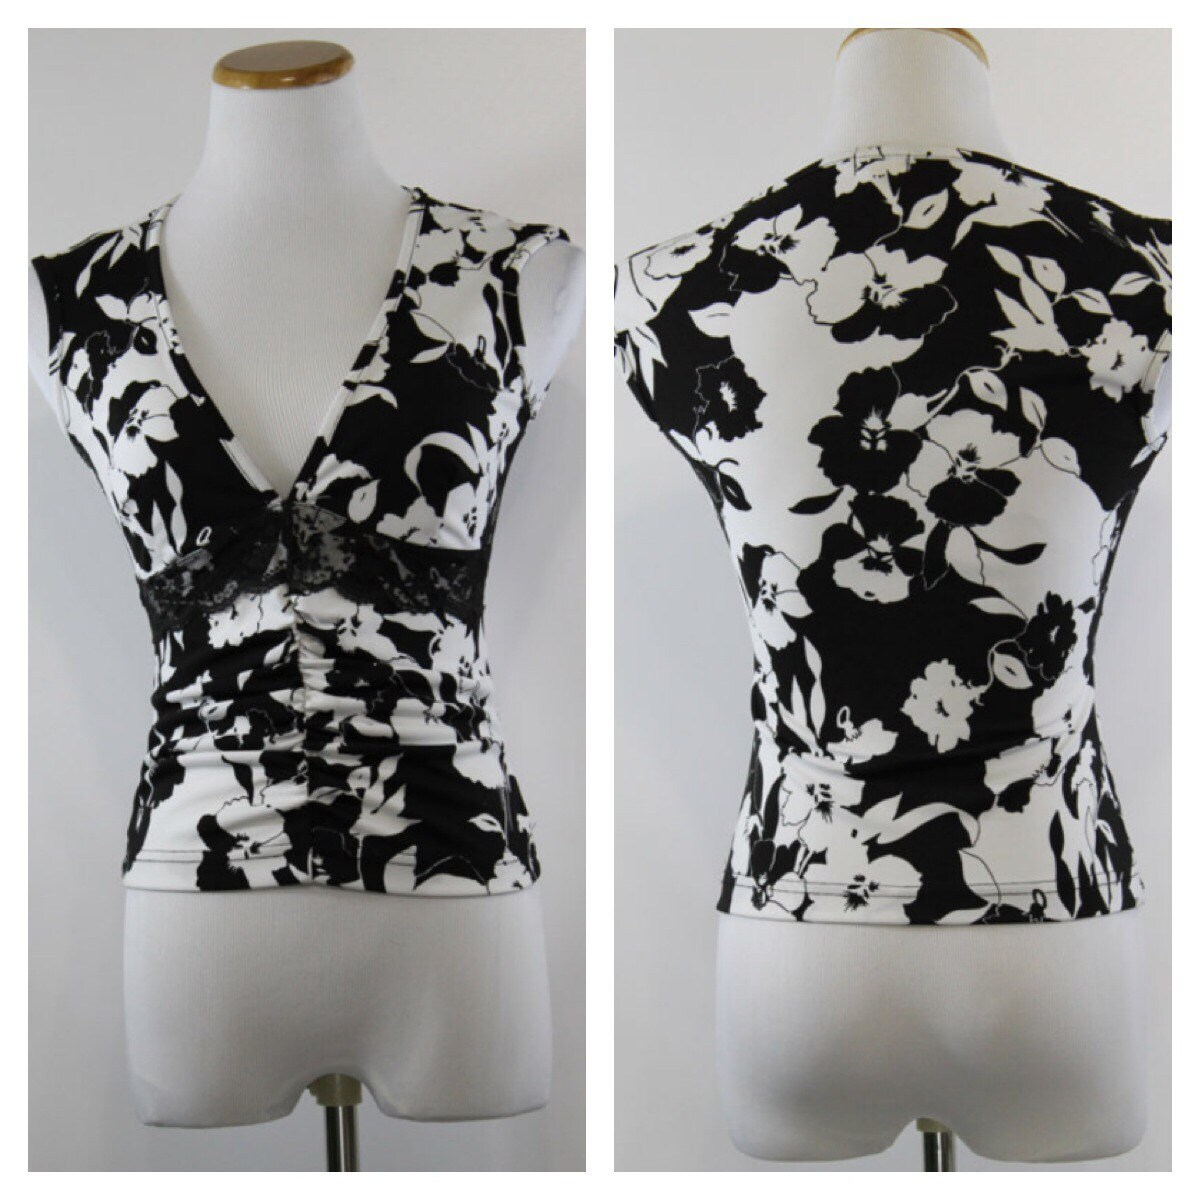 vintage 90s clothing floral top black and white blouse shirt